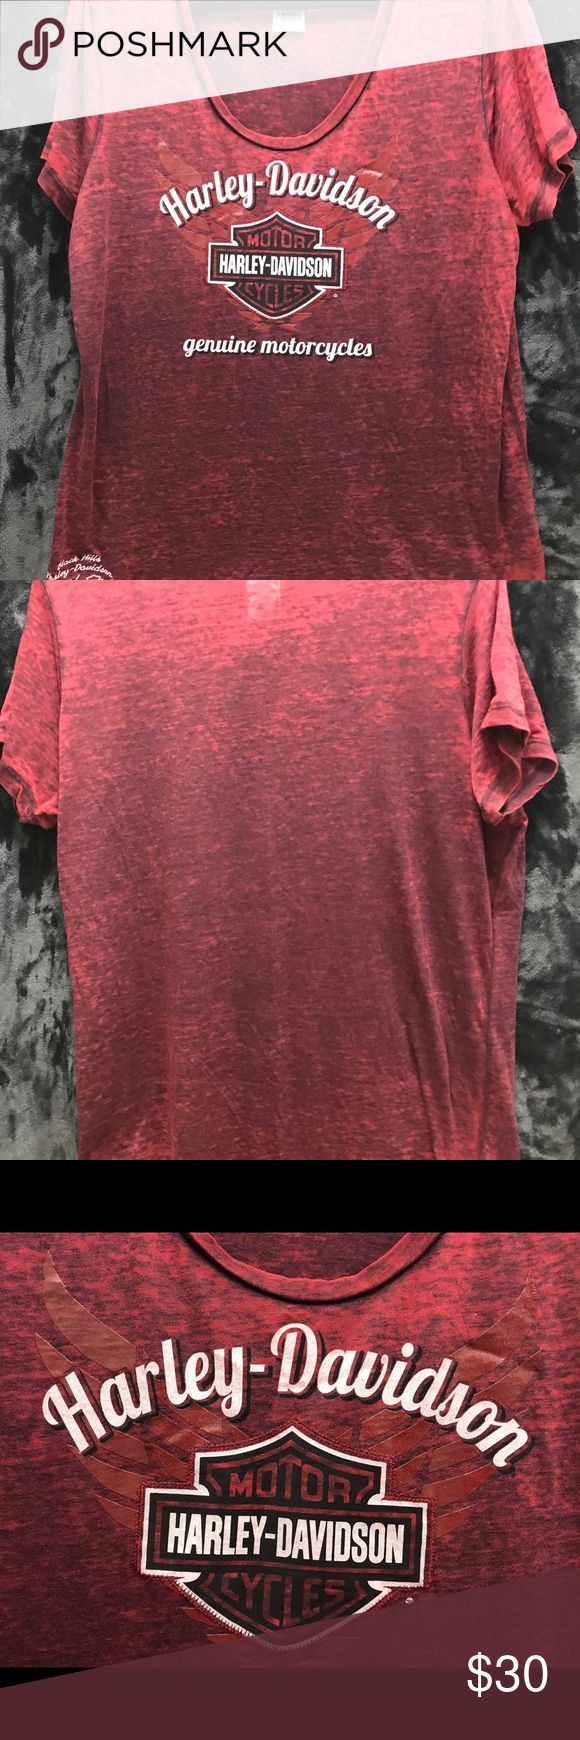 """Harley Davidson Women's burnout scoop neck top Official Harley Davidson apparel. Never worn!Women's scoop neck top with all-over burnout pattern. Gorgeous red color. Super soft with front graphic and side stitching to show location (Black Hills,SD) - yes, I bought it when I went to Sturgis but I've never worn it! I'm no longer a """"biker's chick"""", so I'm selling off my HD wardrobe! Harley-Davidson Tops Tees - Short Sleeve"""